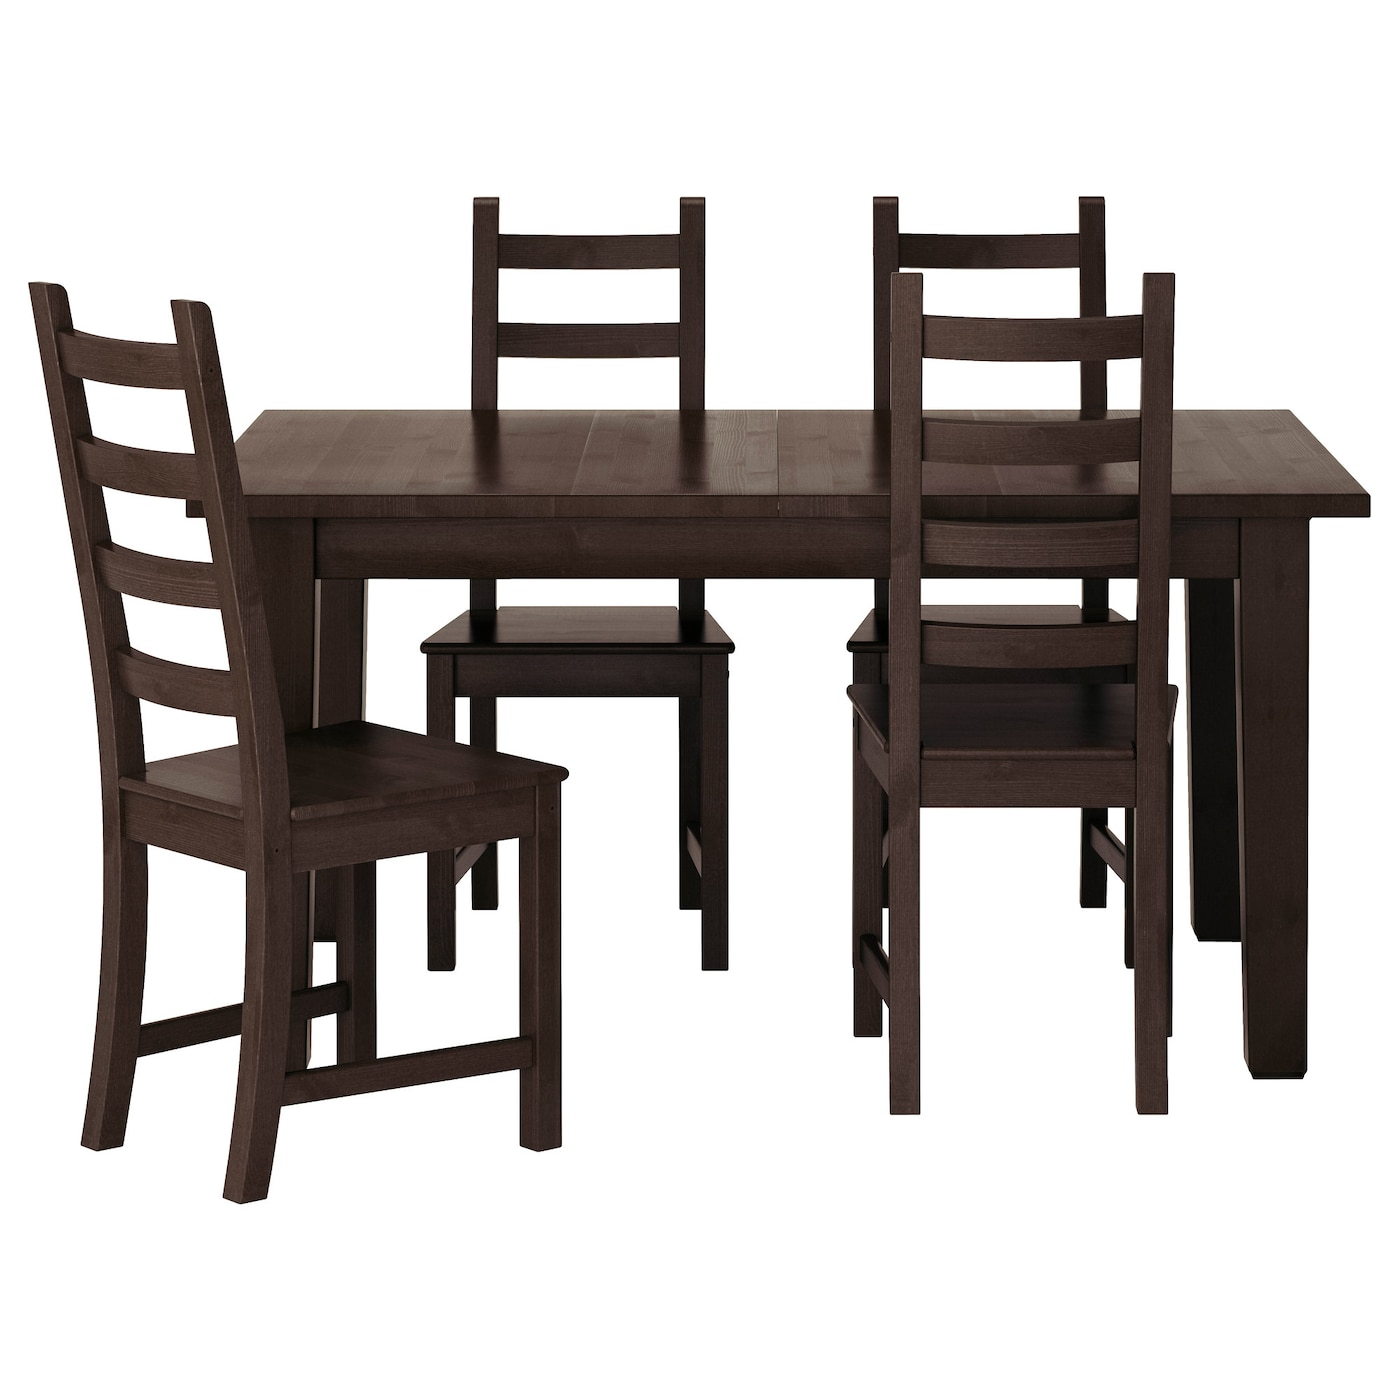 IKEA KAUSTBY/STORNÄS table and 4 chairs Solid pine; a natural material that ages beautifully.